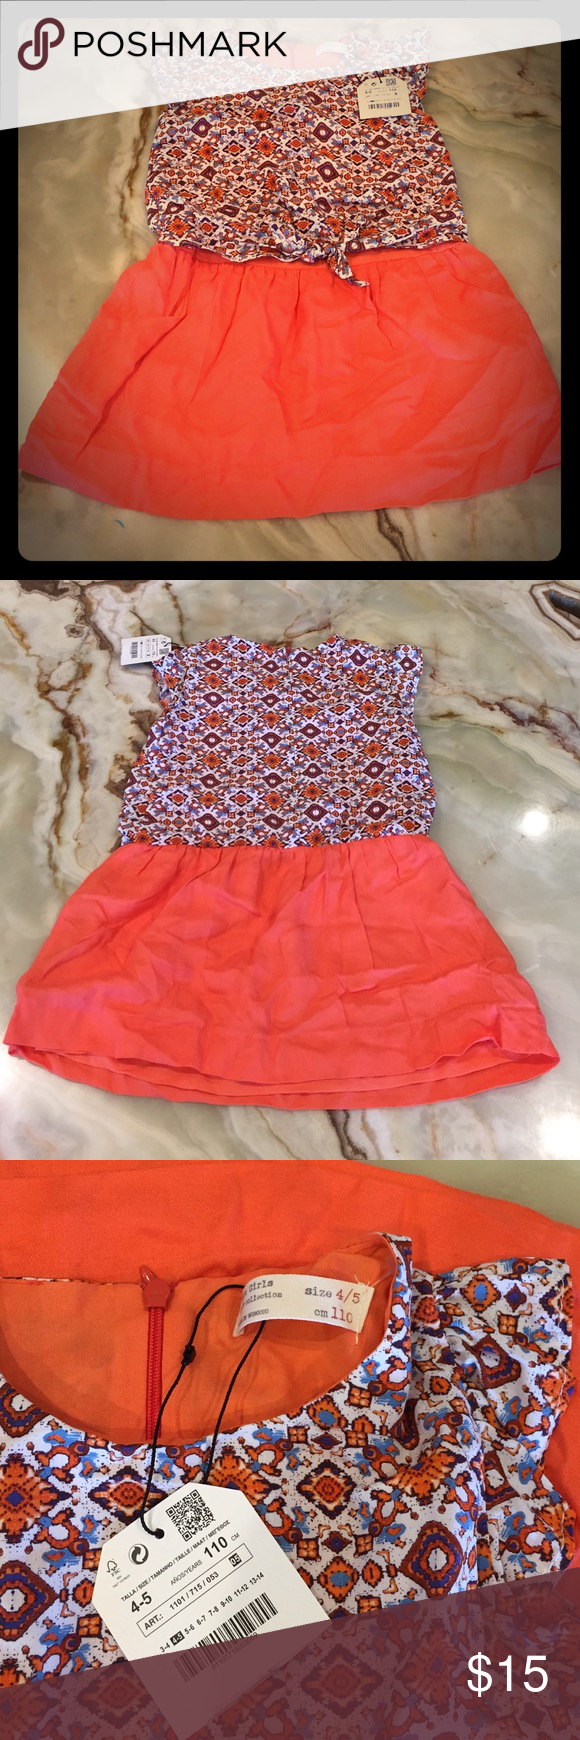 Zara Girls Casual Collection Dress Size 6/7 Zara Girls Dress, Size 6/7, multi color, Sleeveless, cotton/viscose blend New with tag Zara Dresses Casual